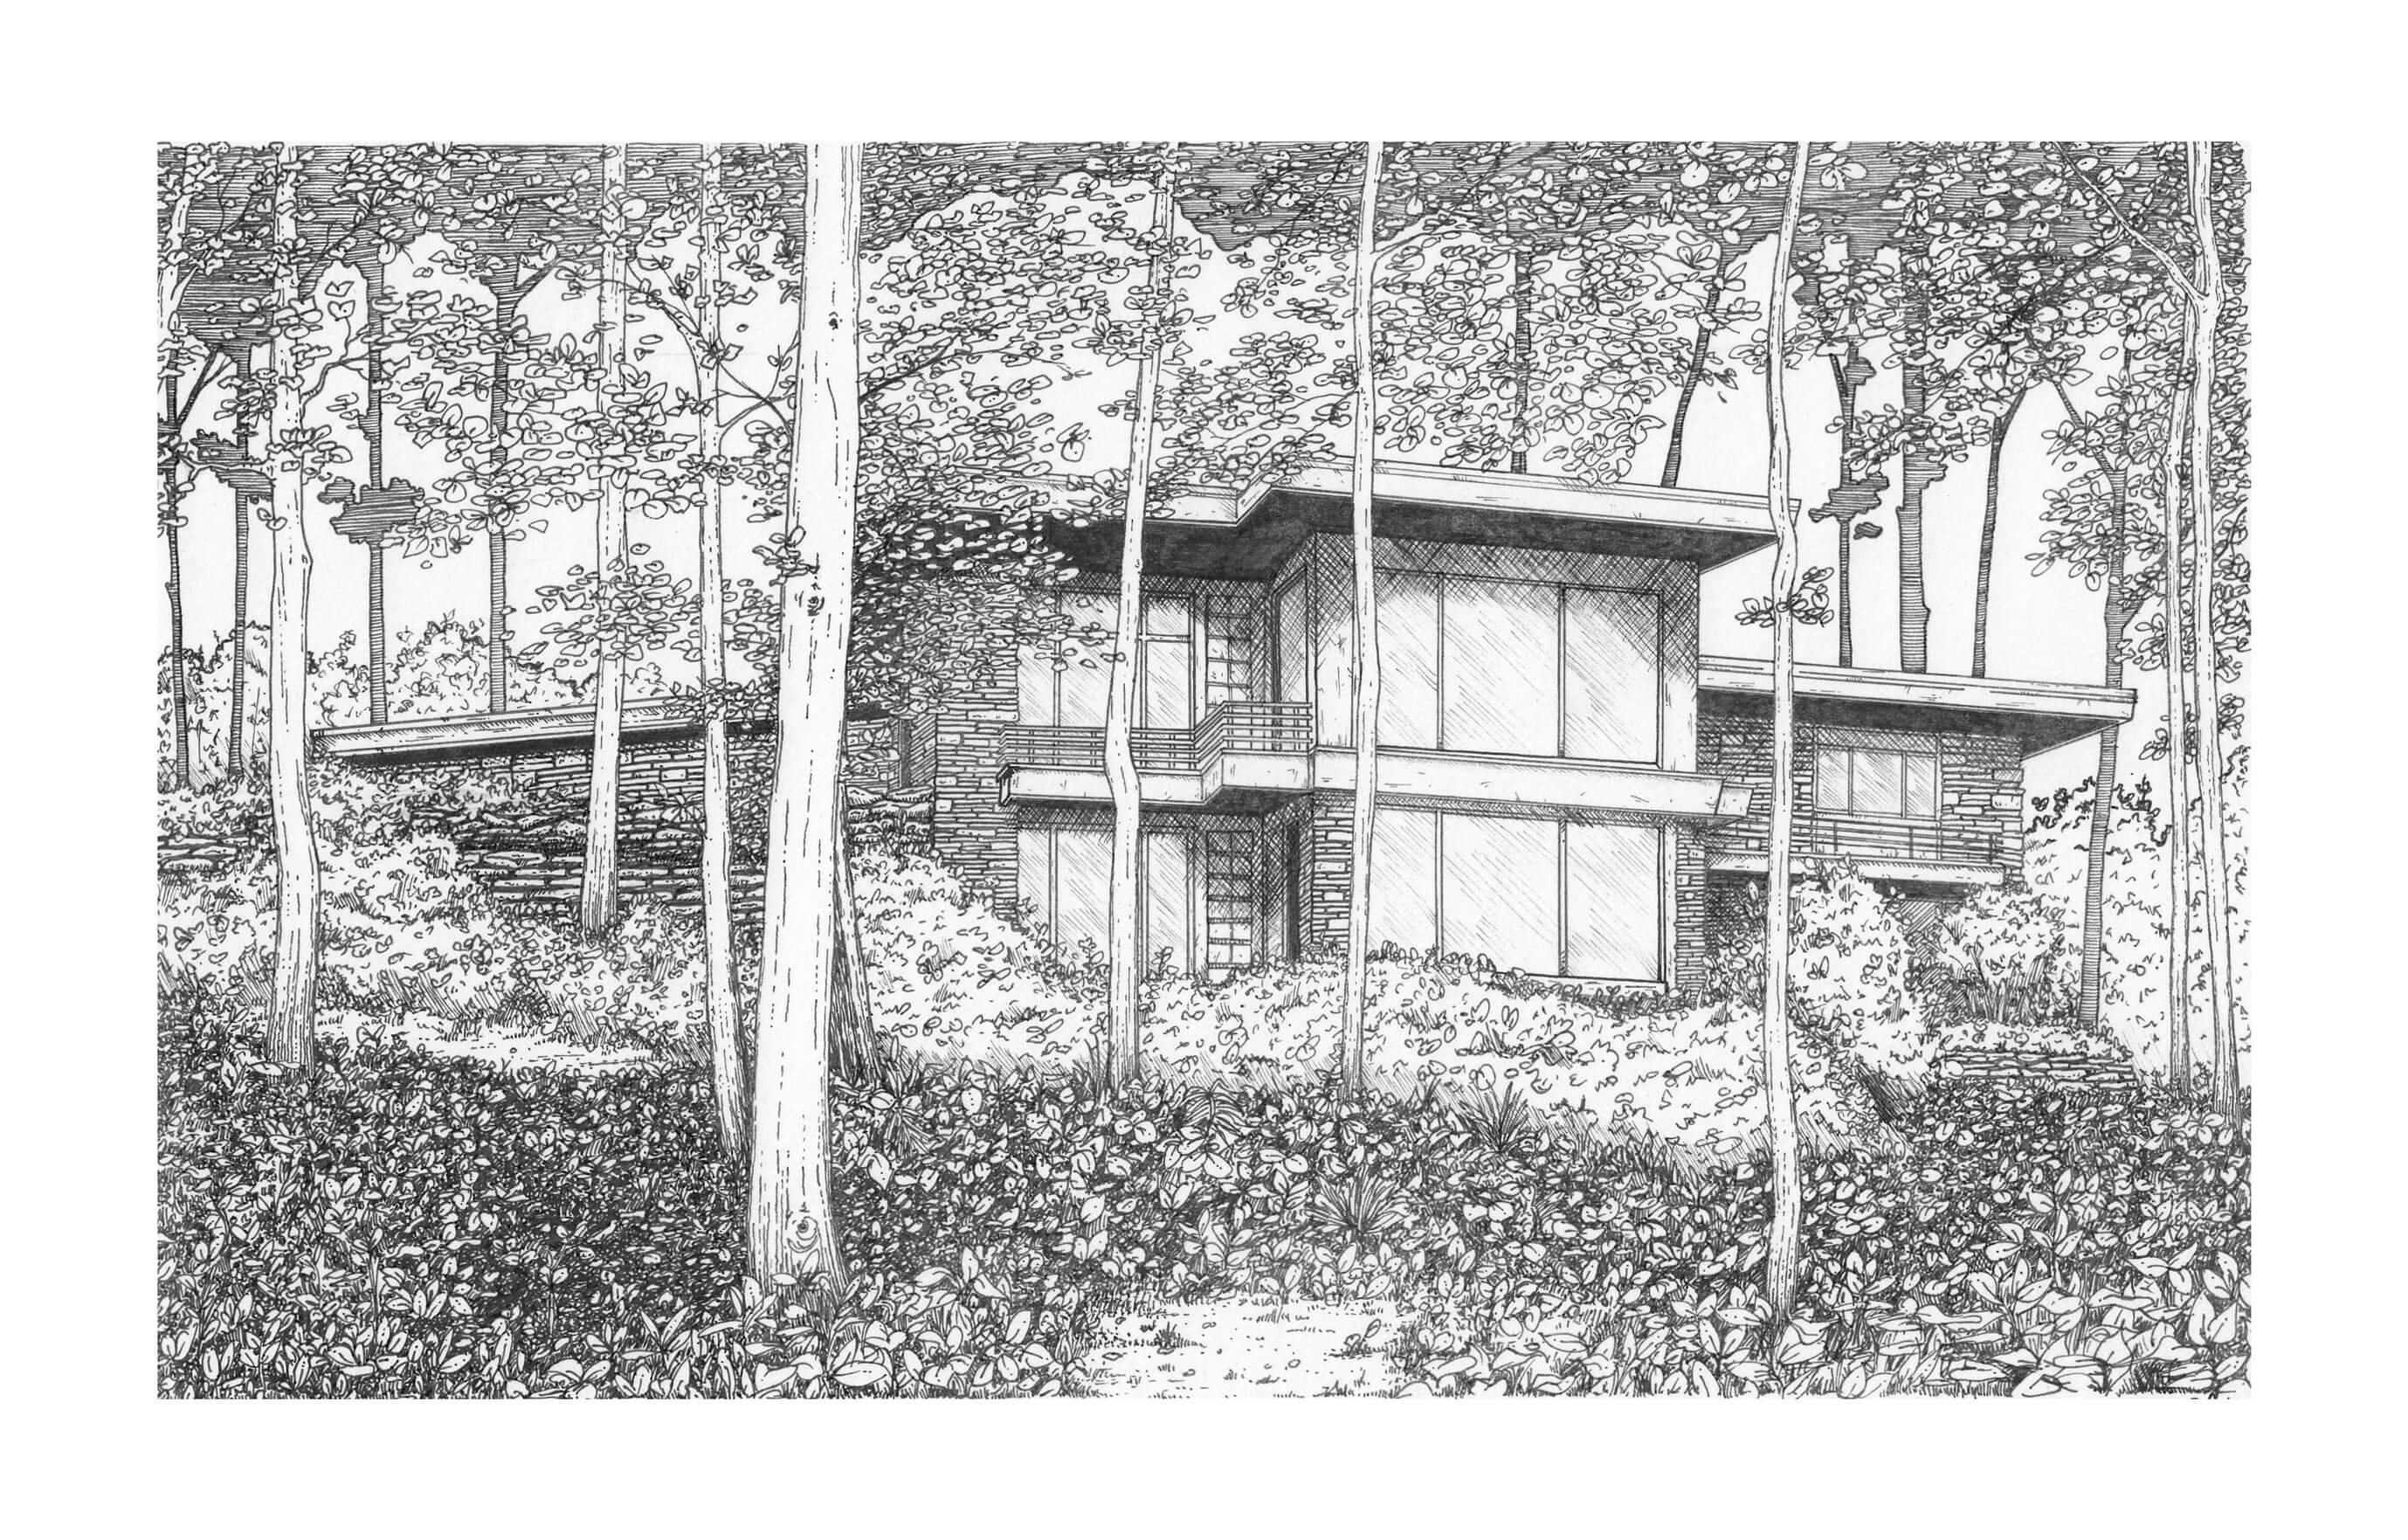 Illustration of the Luers Residence in Indianapolis, Indiana